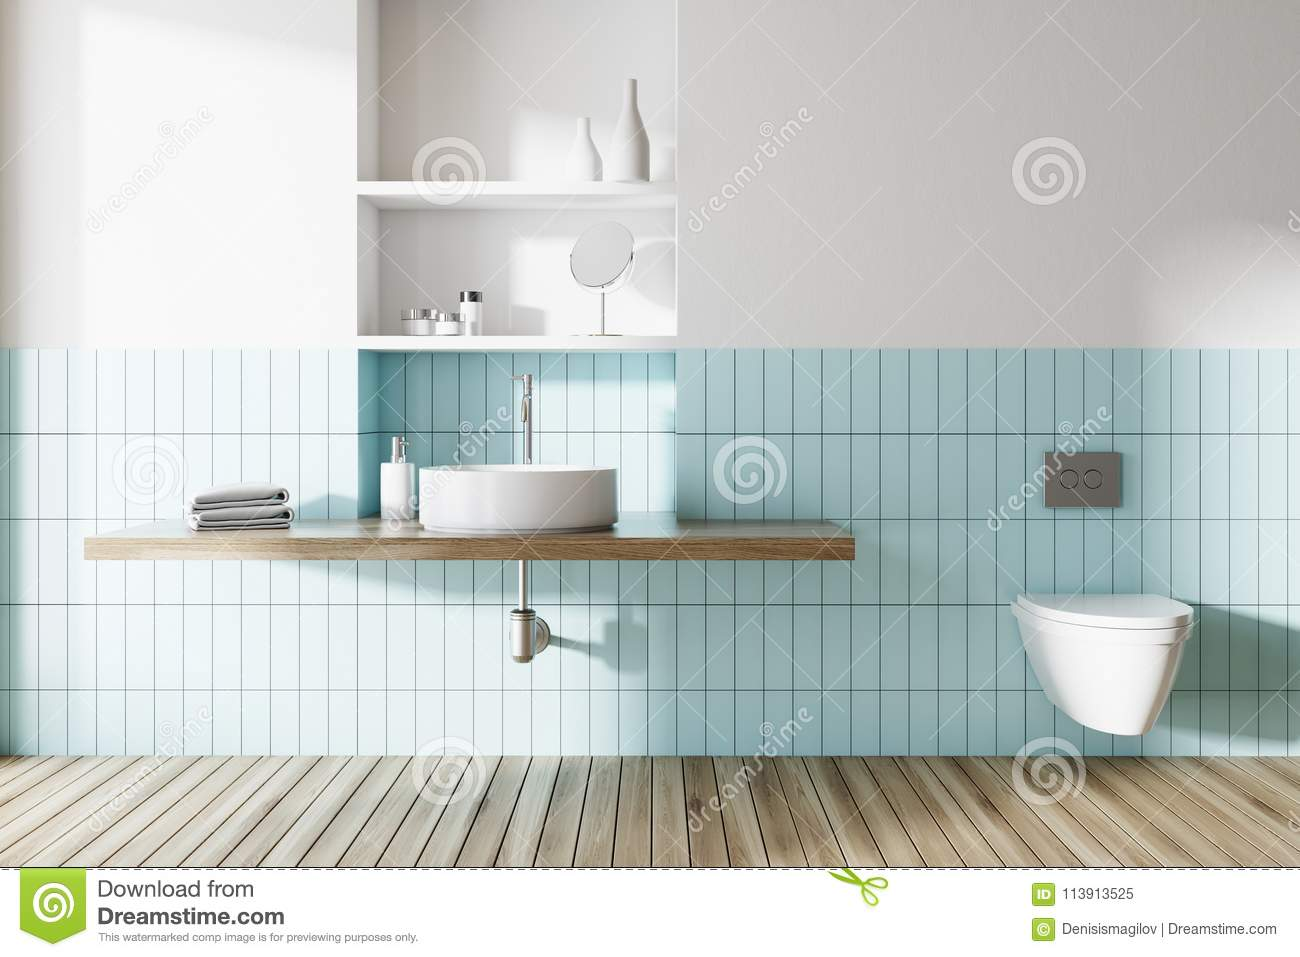 Sink And Toilet In A Blue And White Bathroom Stock Illustration ...